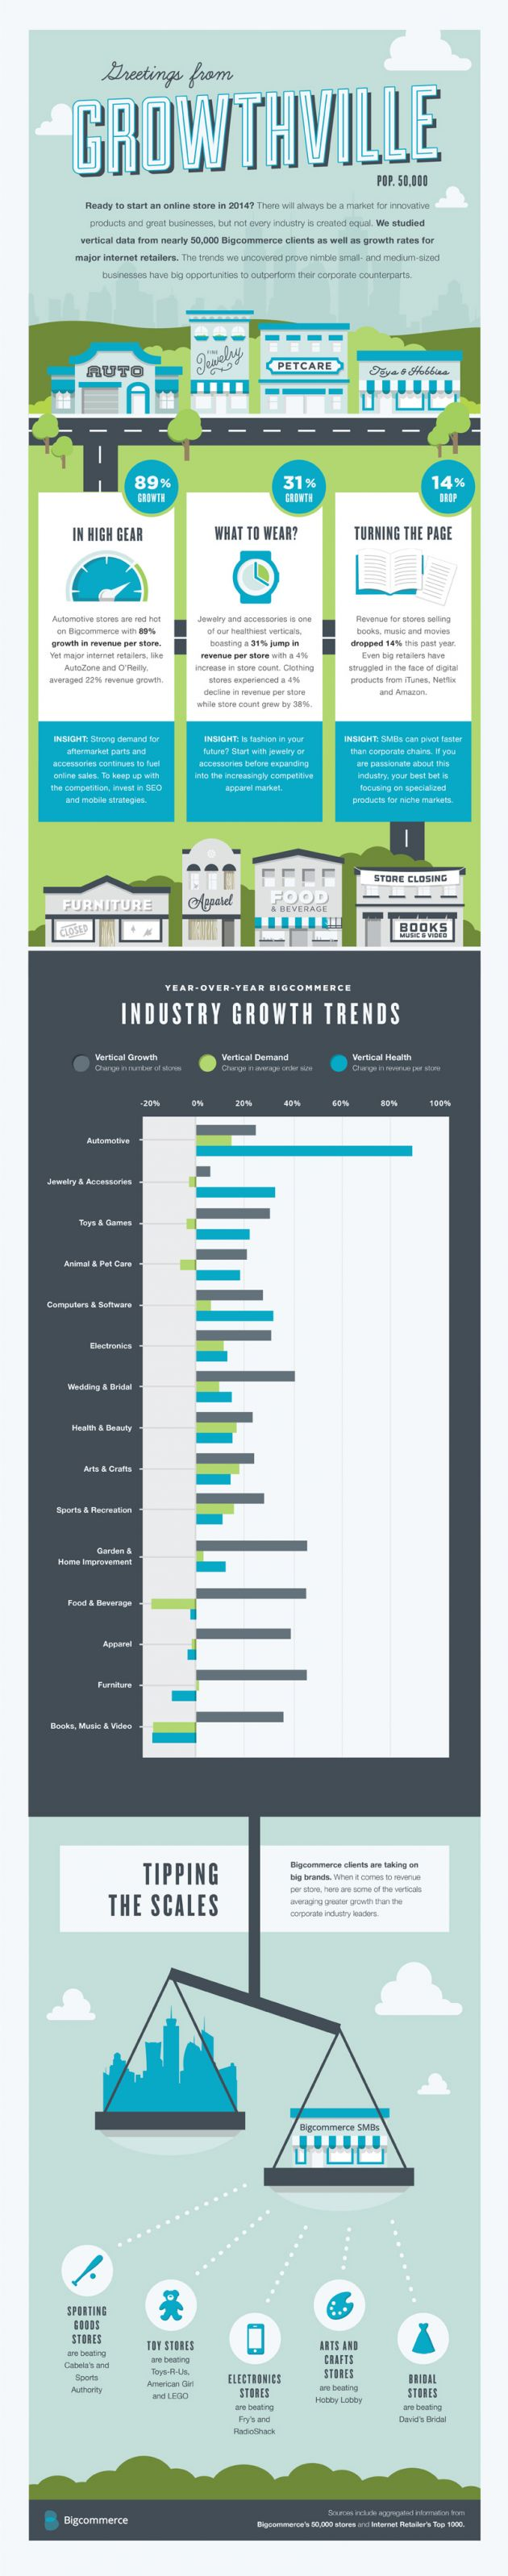 most-profitable-ecommerce-product-categories-infographic